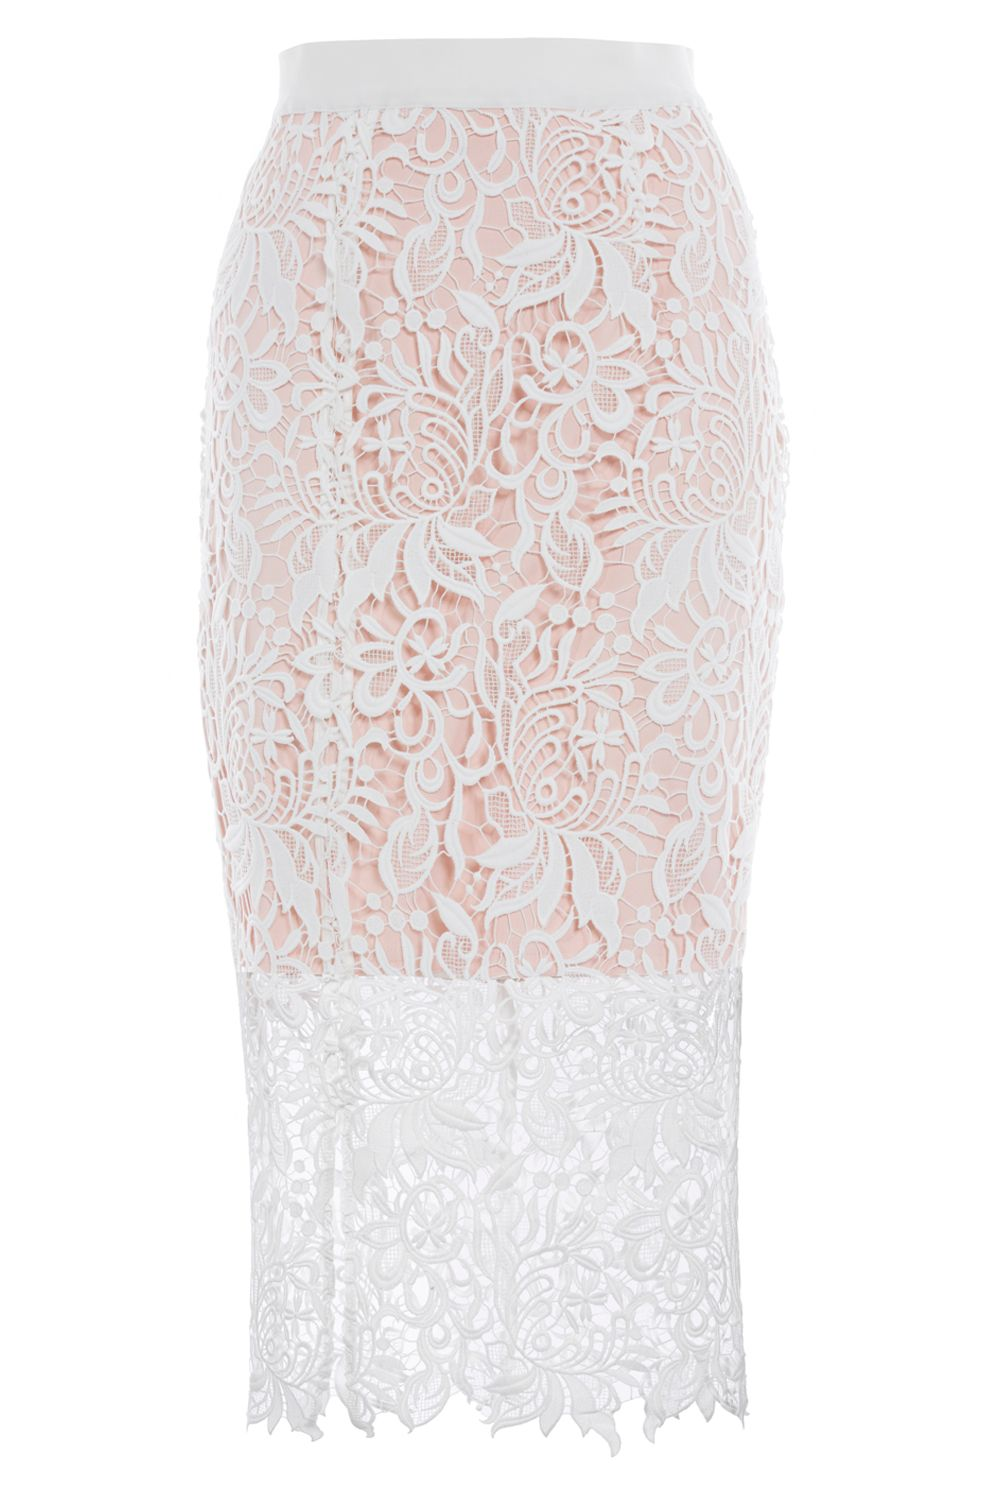 Coast Melva Lace Skirt, White